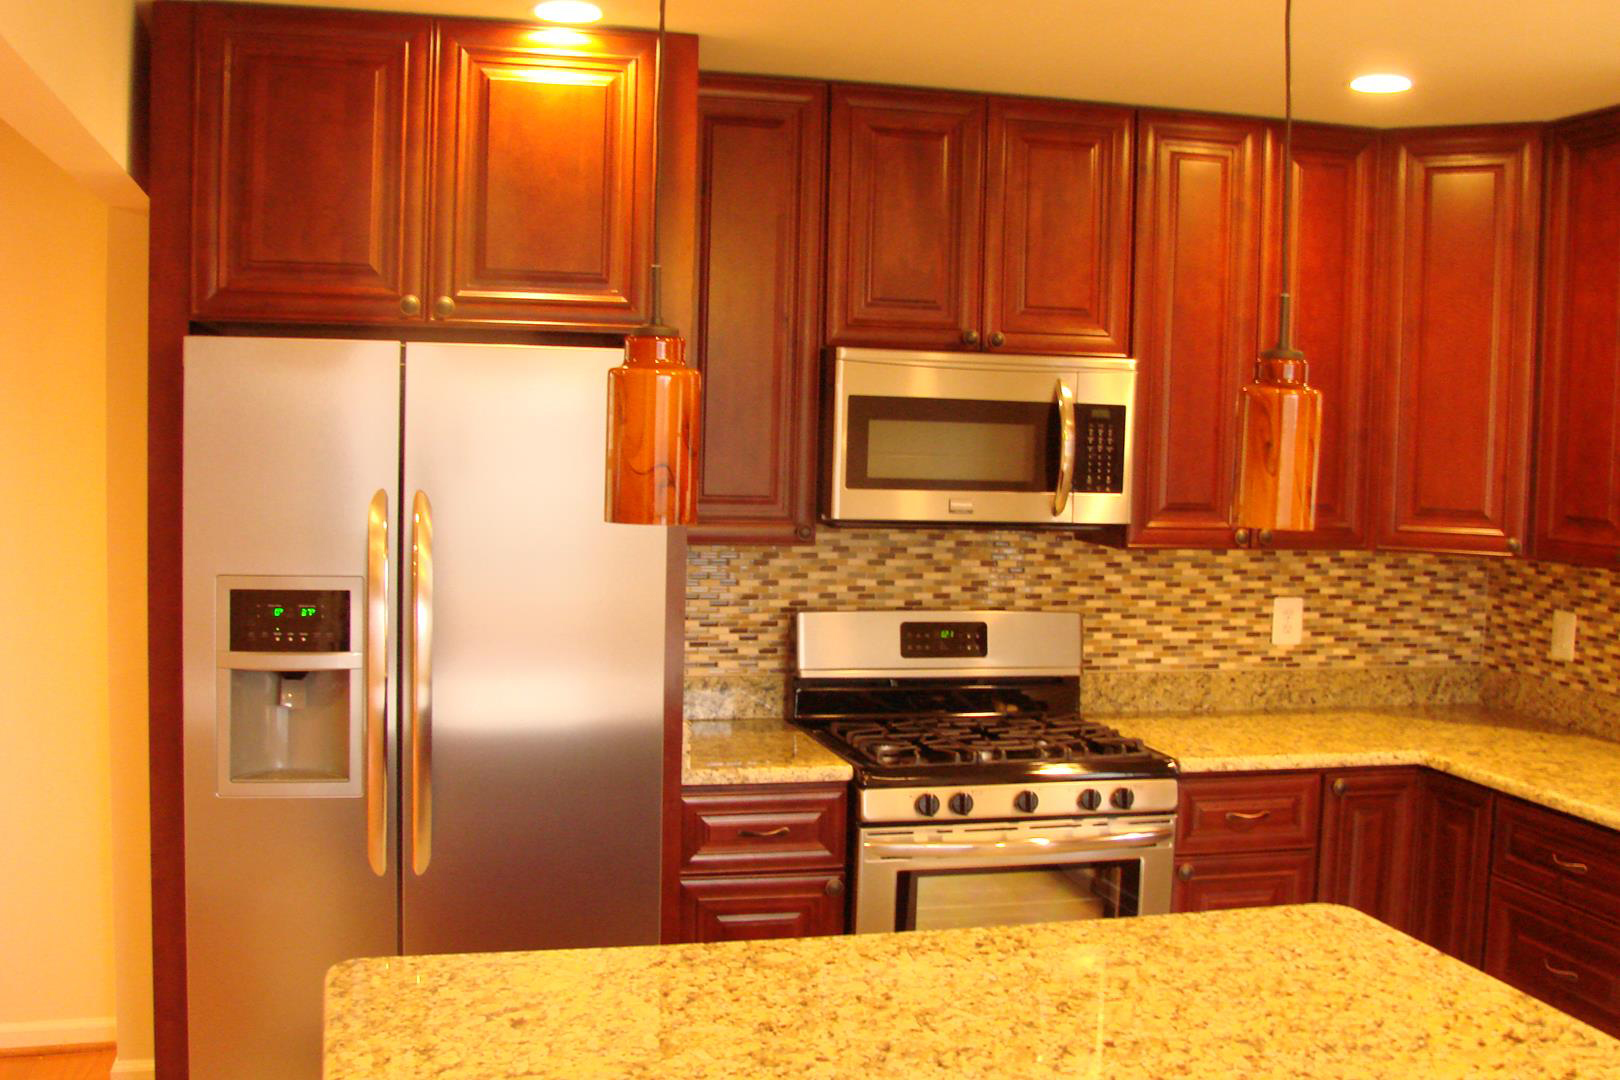 Kitchen Remodeling Contractor in Chantilly Virginia